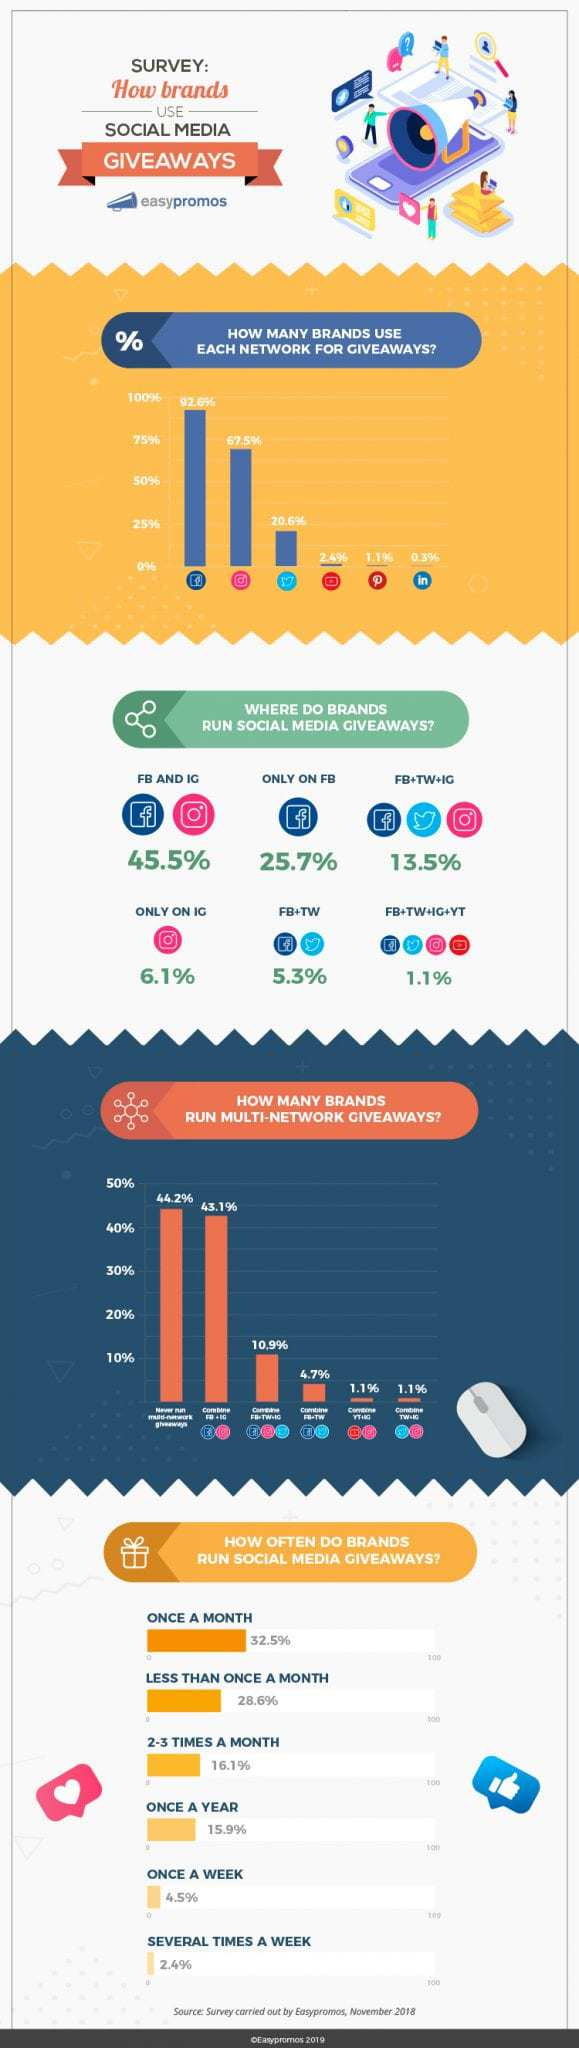 Here's a quick overview at how brands use social media contests and giveaways; check out this infographic.